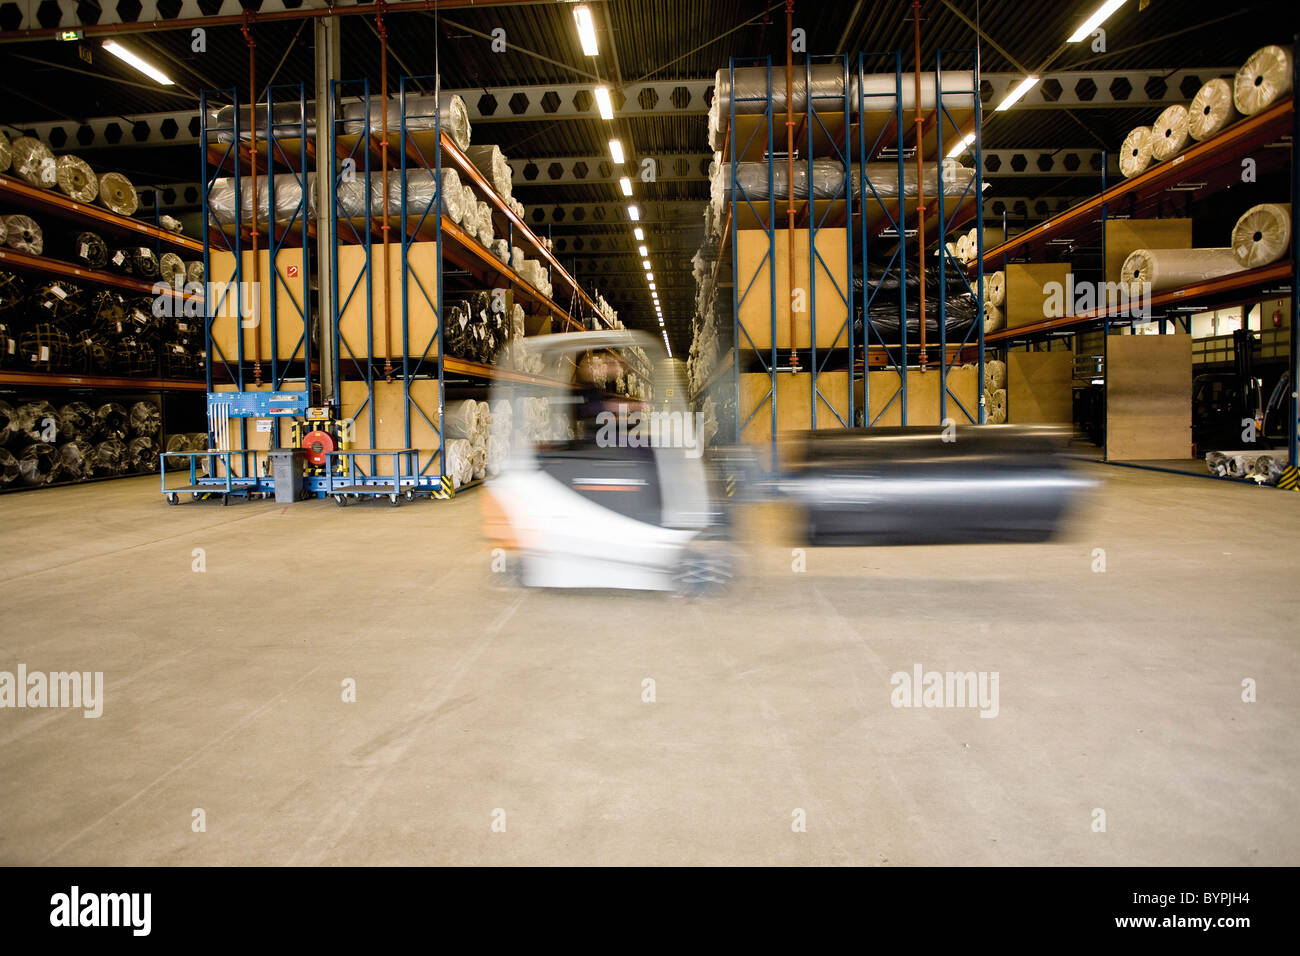 Forklift transporting roll in carpet tile factory warehouse - Stock Image